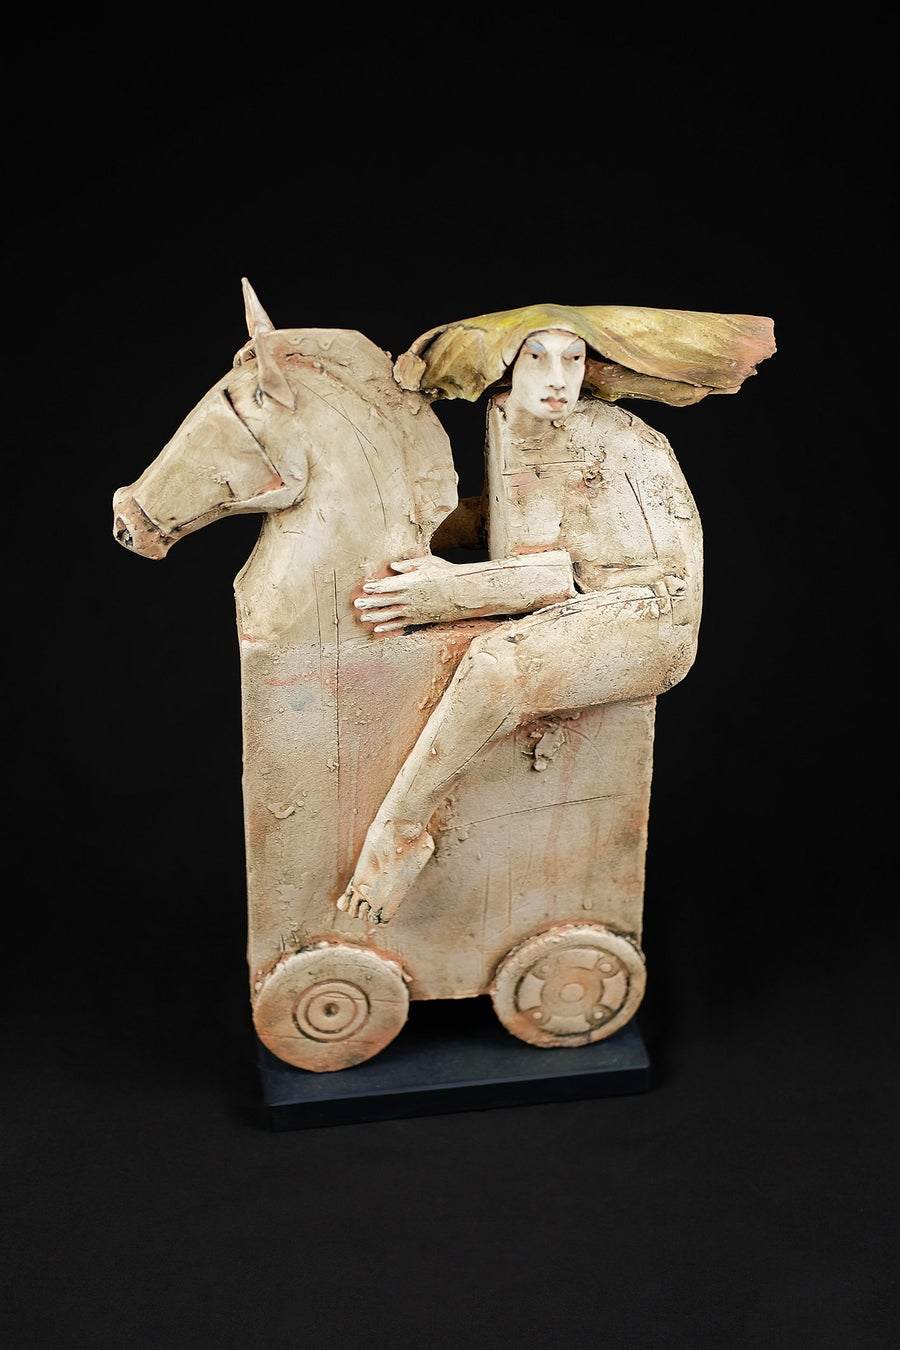 Image of CHRISTY KEENEY 'LADY GODIVA' CERAMIC SCULPTURE